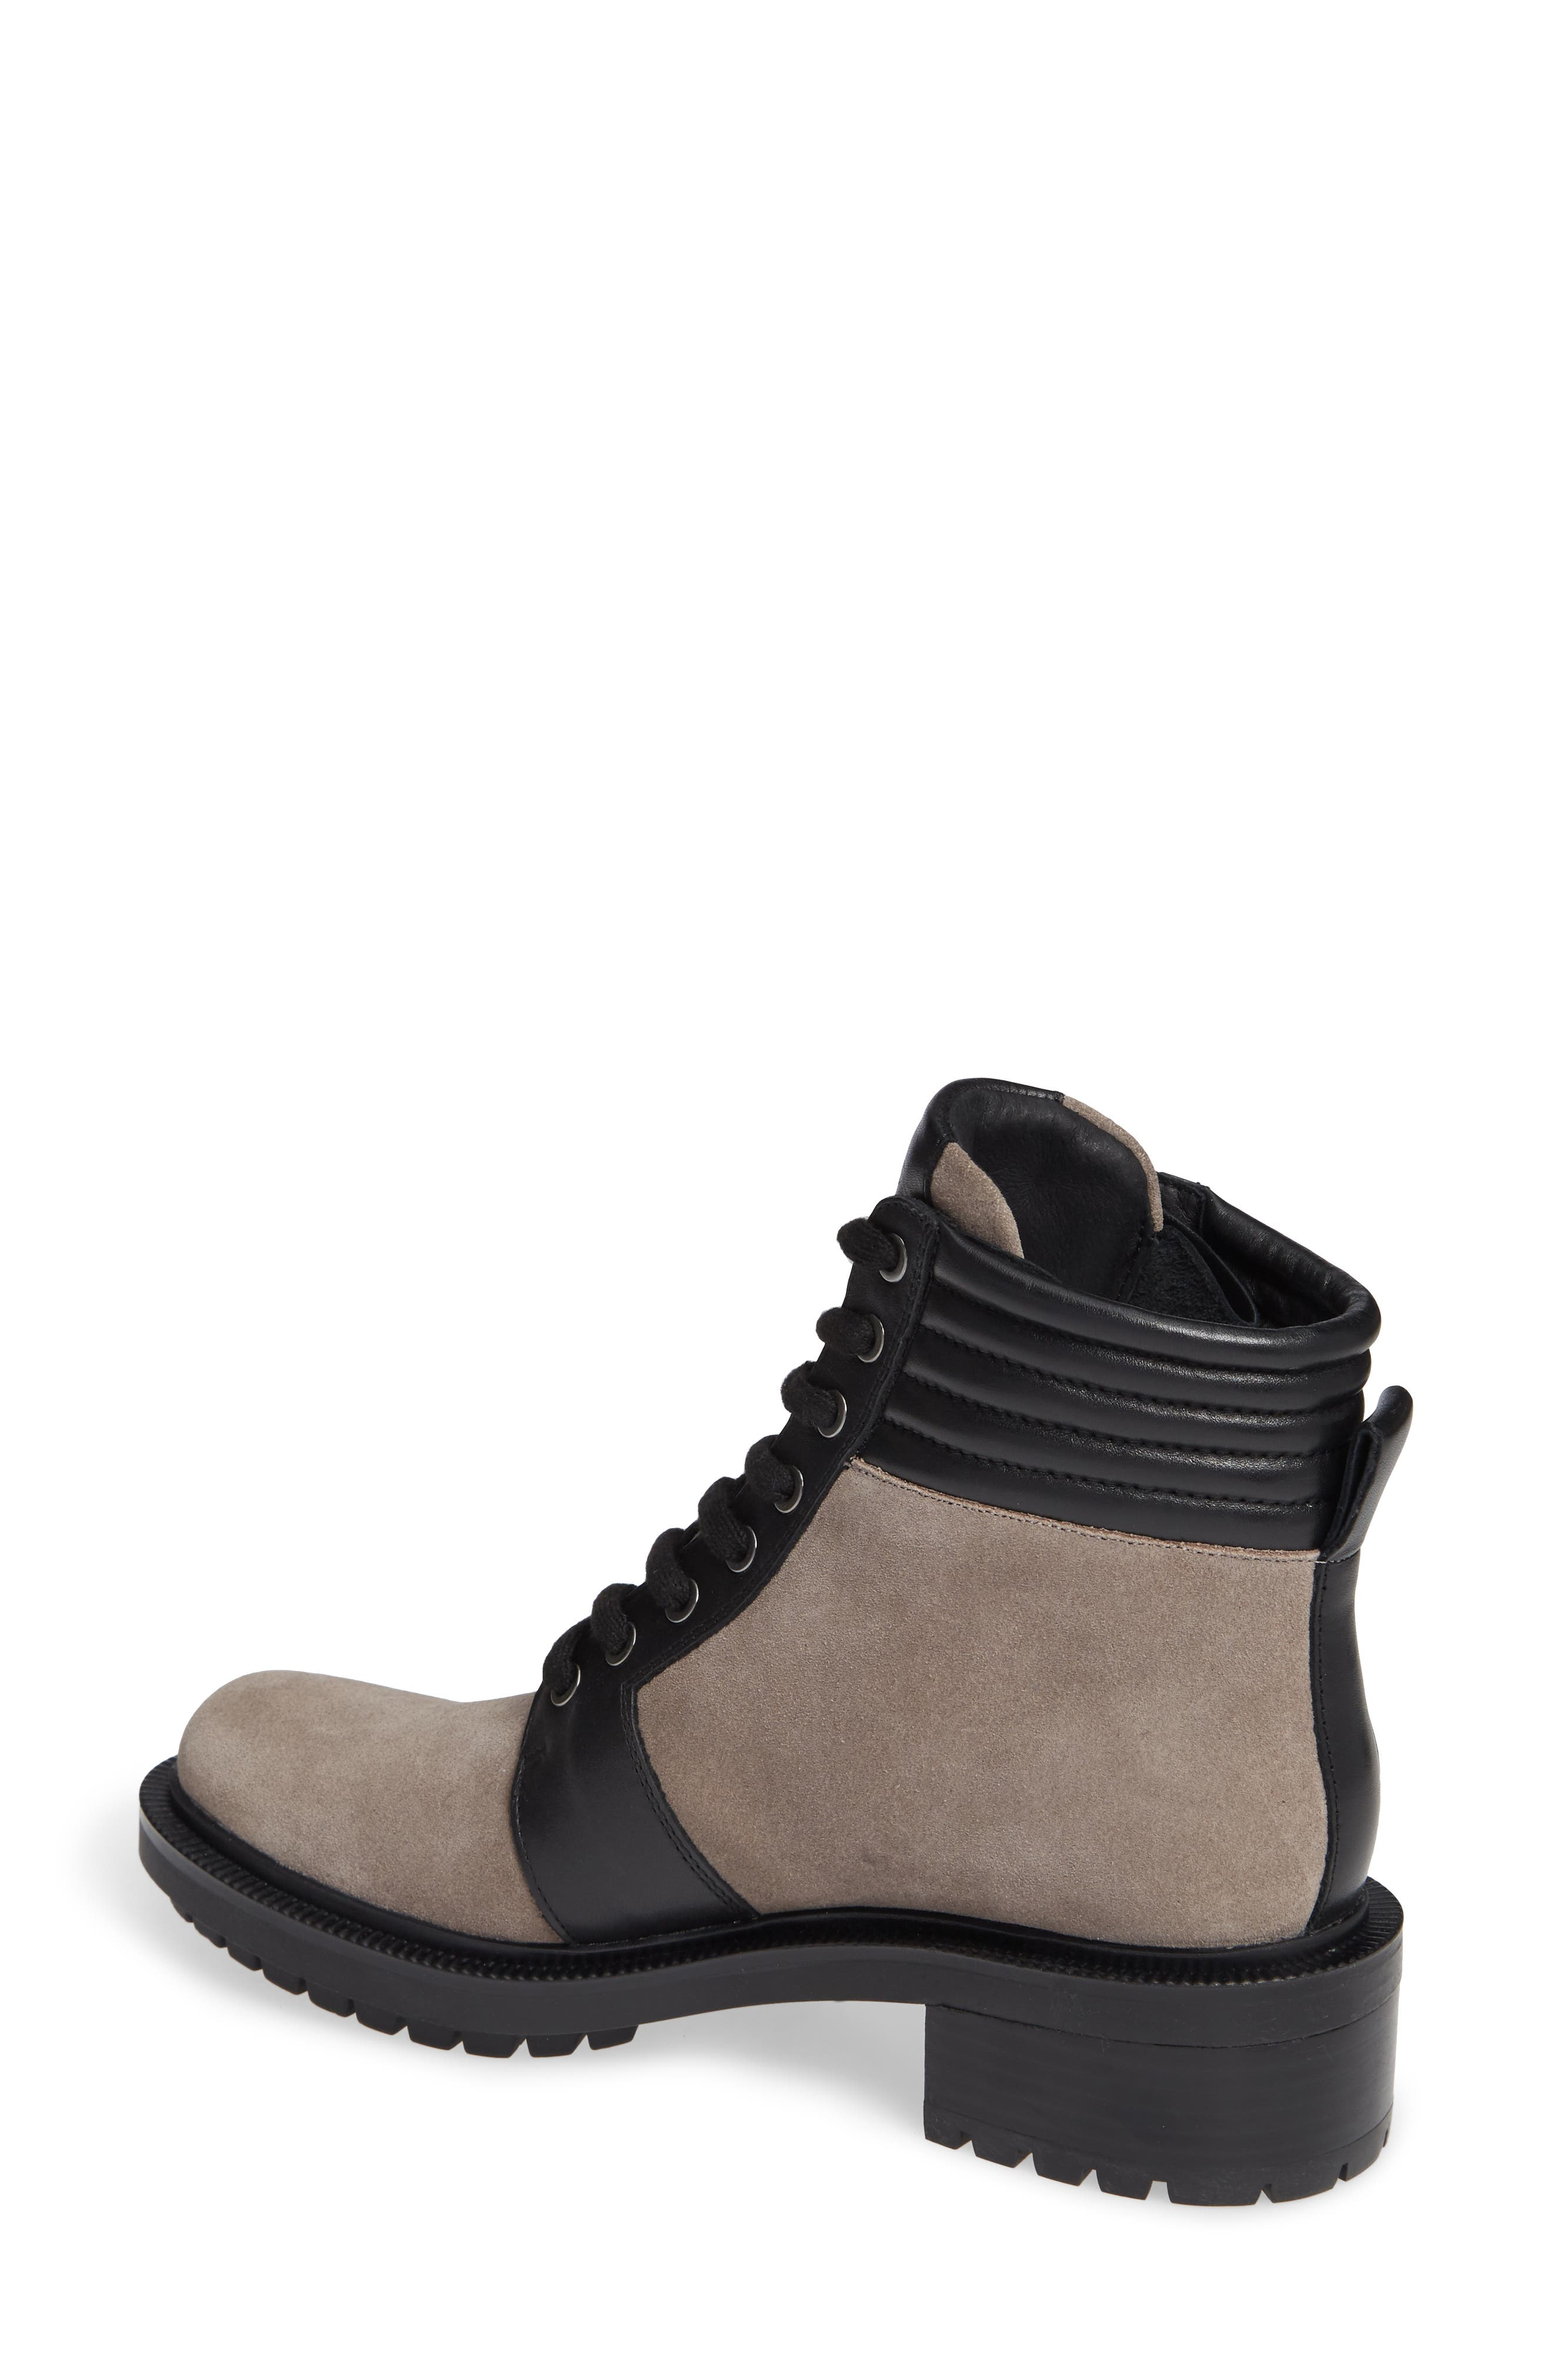 Moto Boot,                             Alternate thumbnail 2, color,                             WINTER GREY SUEDE